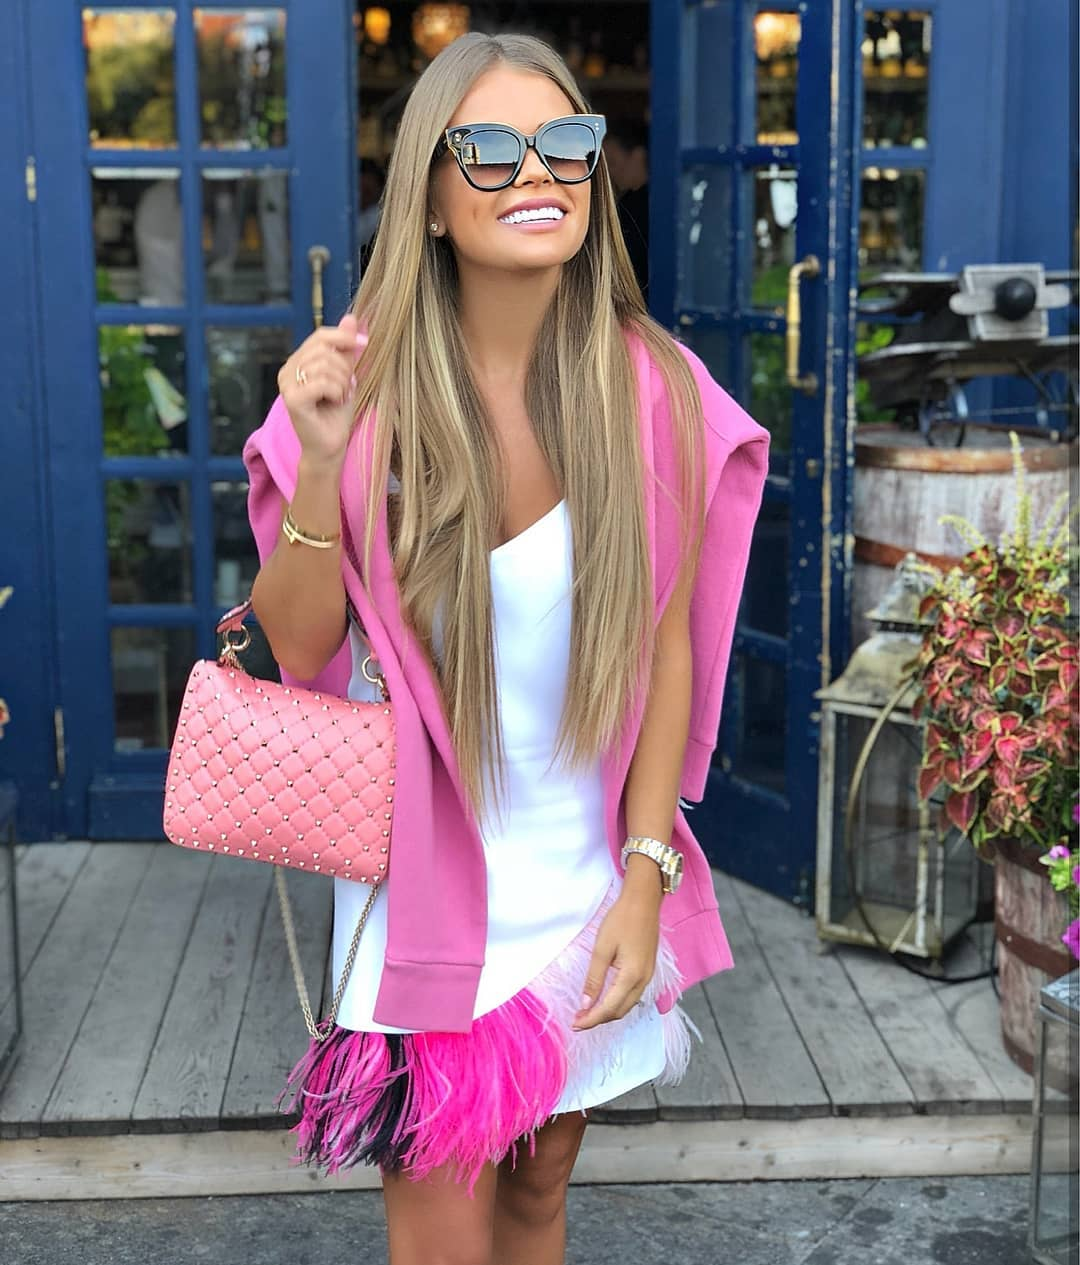 White Dress And Pink Sweater Combination For Spring 2020